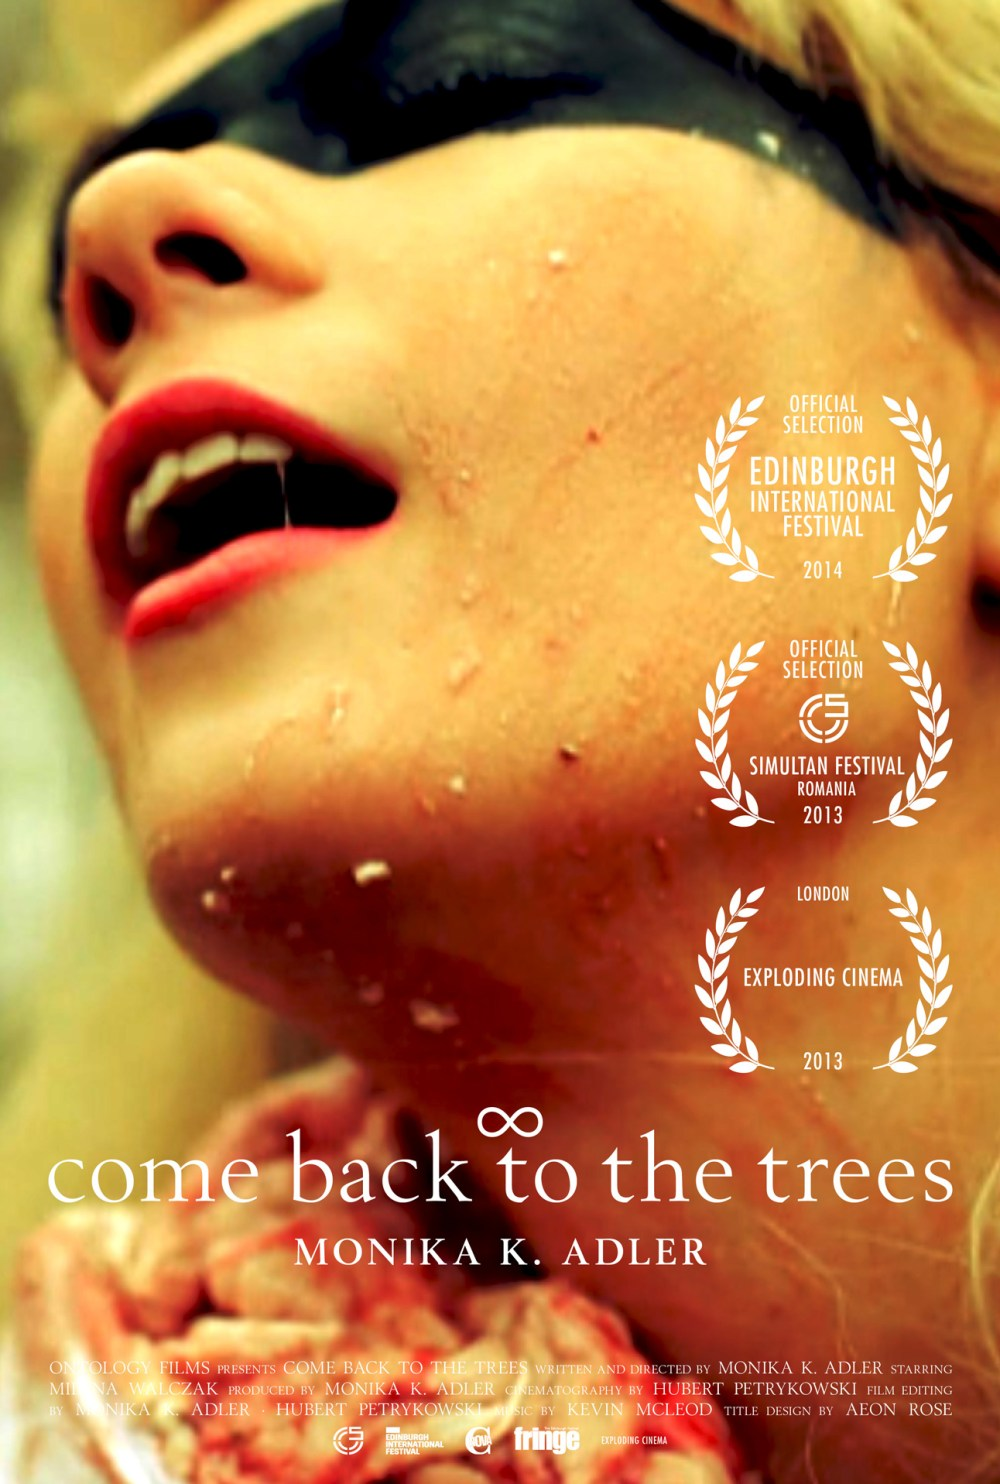 Monika K. Adler, come back to the trees, 2013, film poster, Aeon Rose